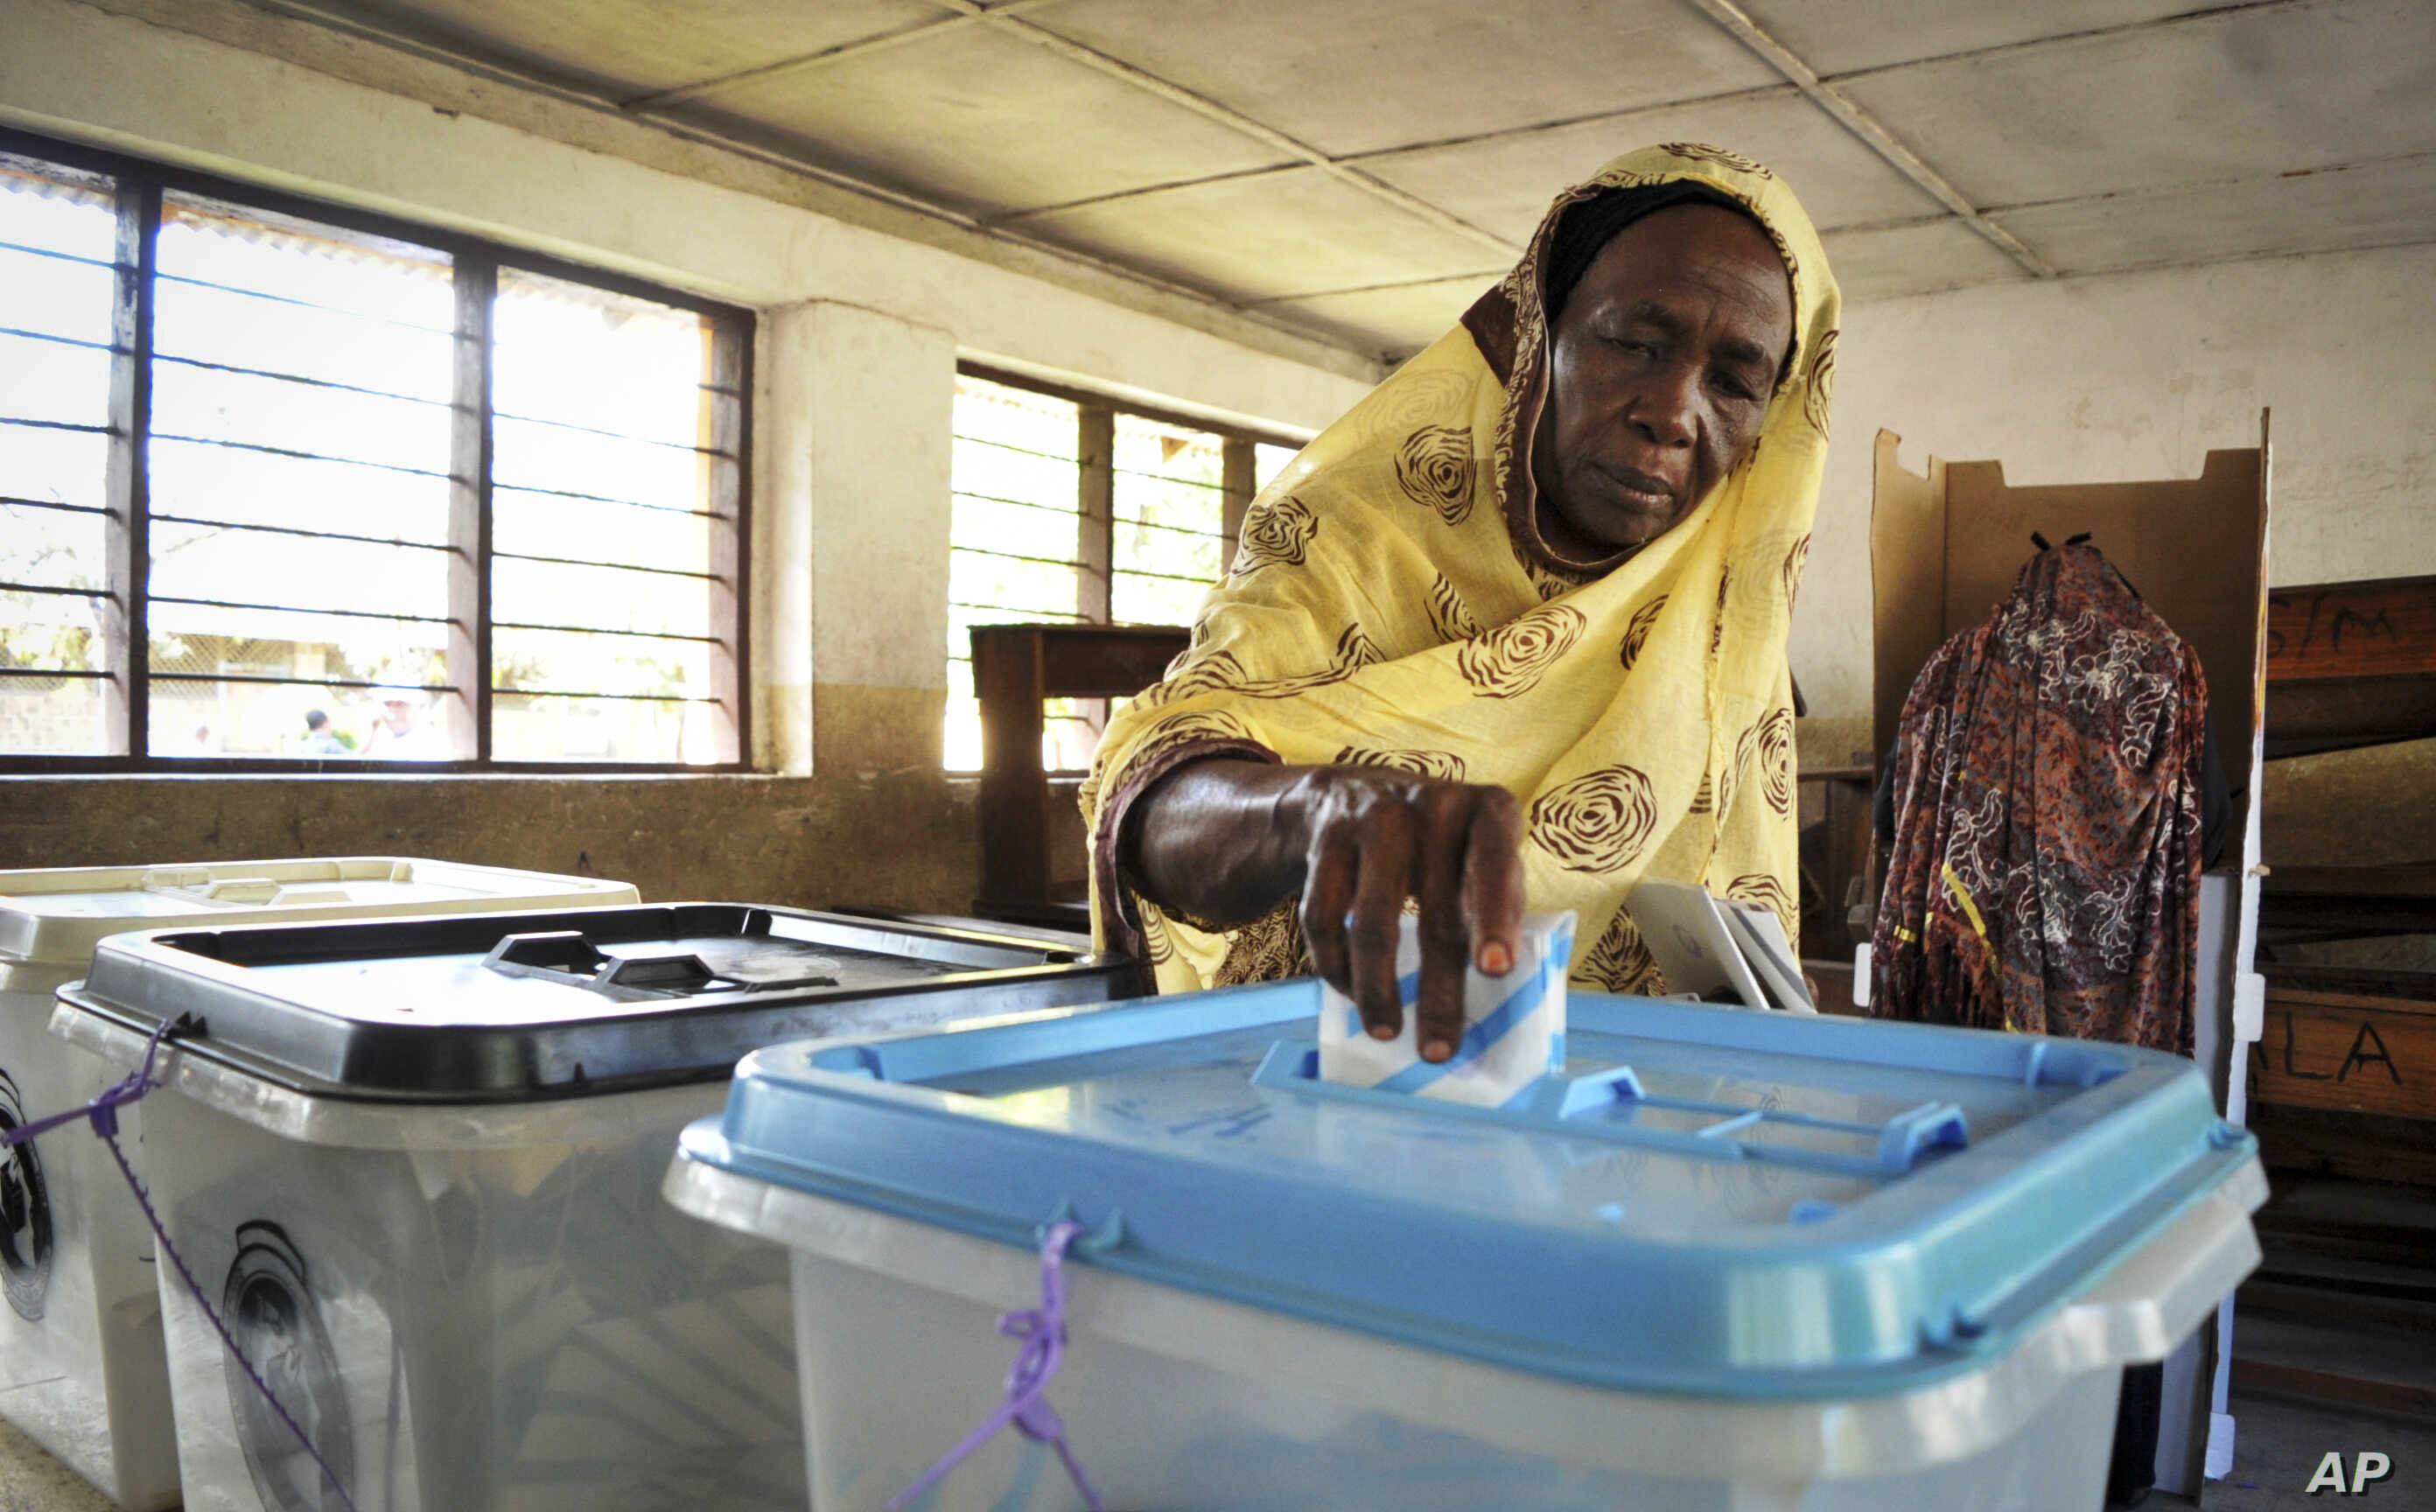 An elderly Tanzanian woman casts her vote in the presidential election at a polling station in Dar es Salaam, Tanzania, Oct. 25, 2015.